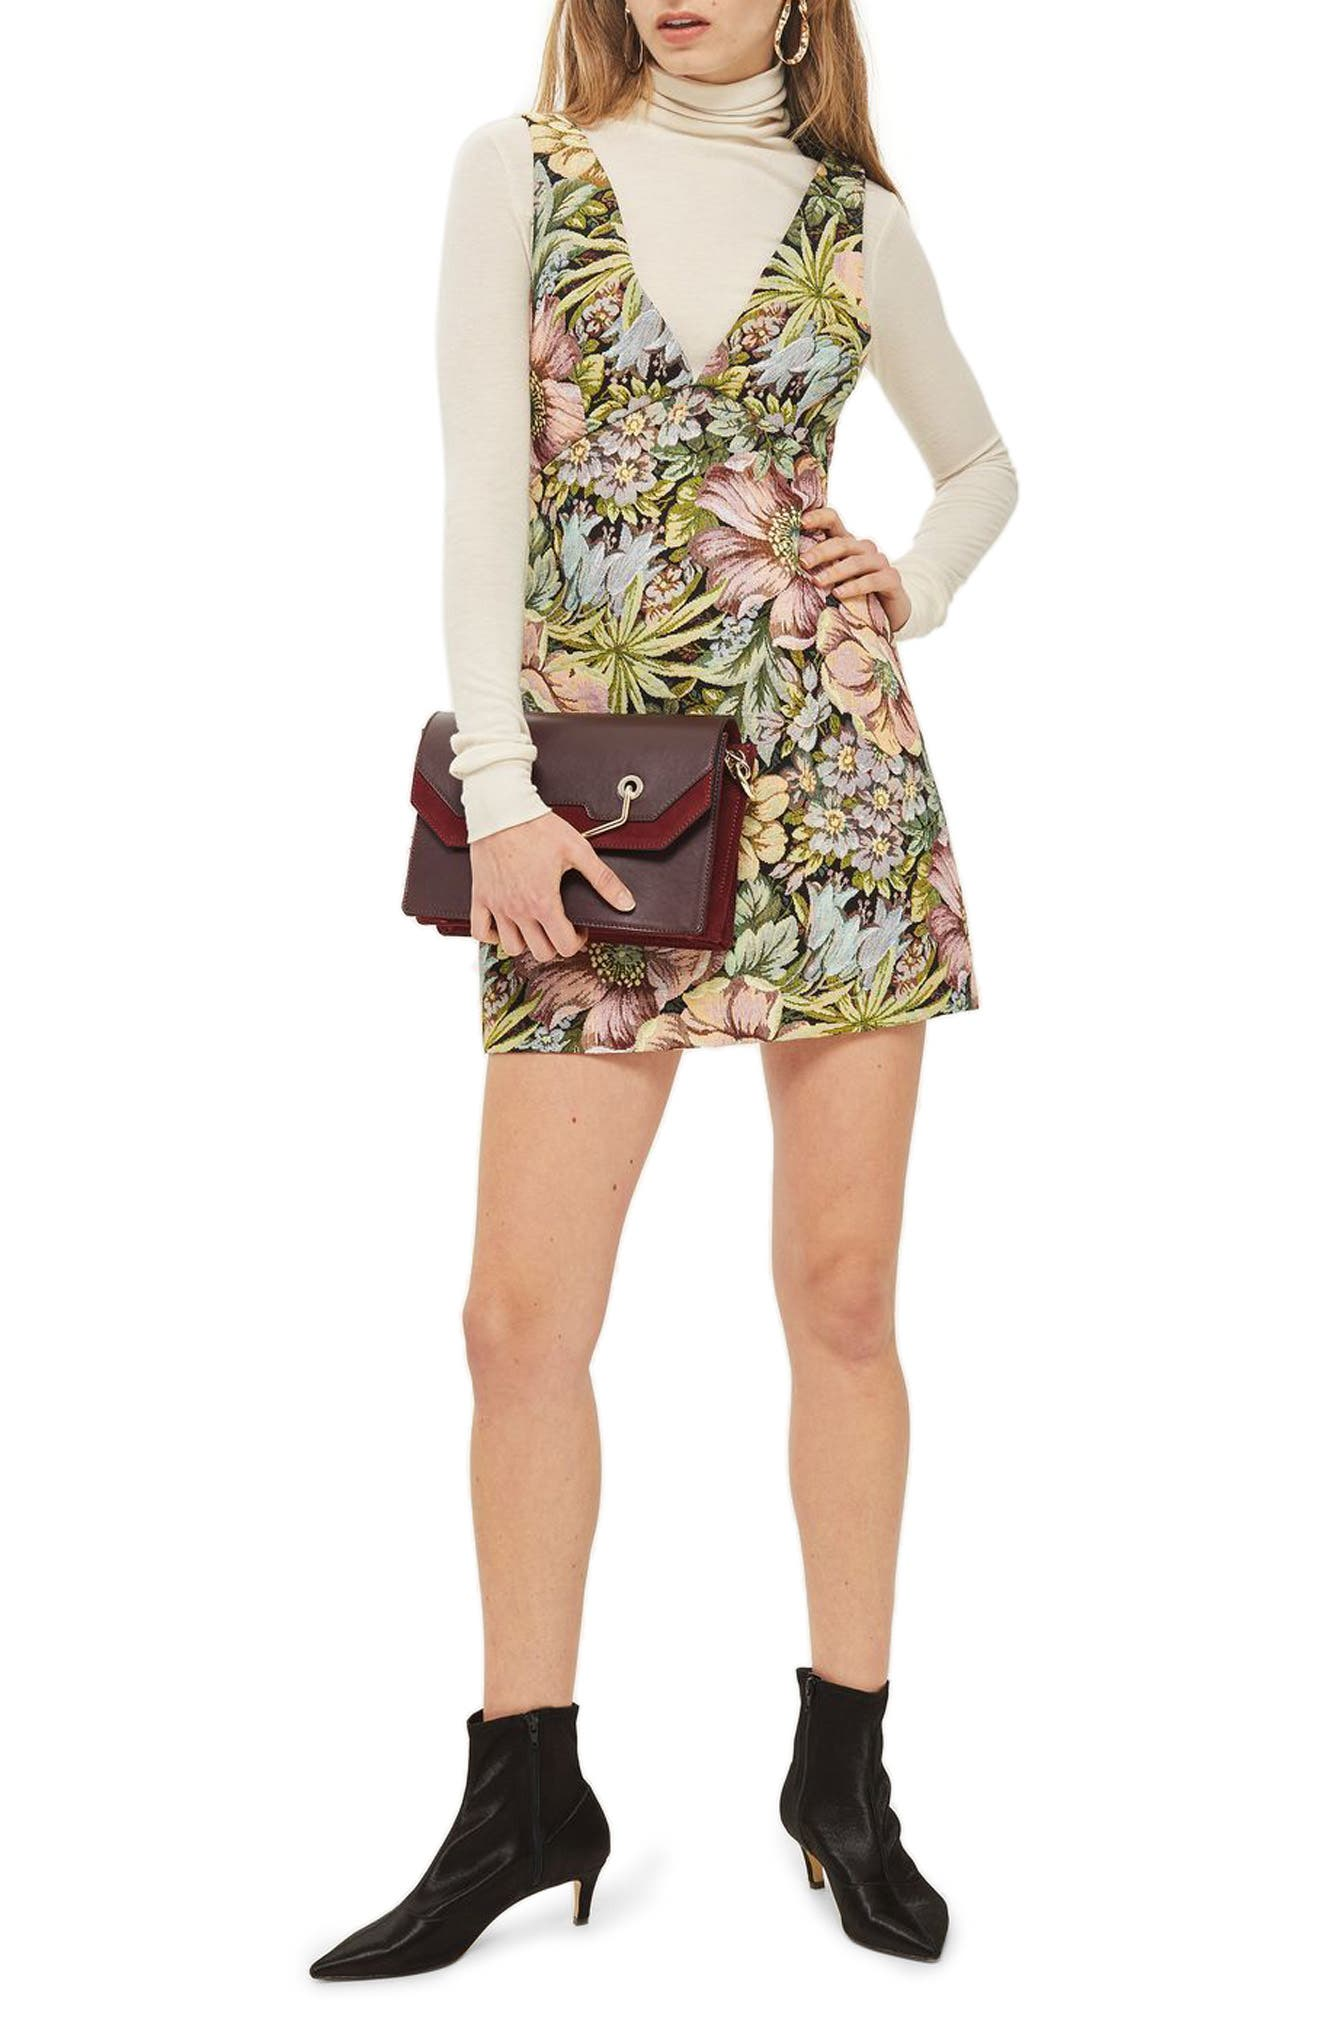 Topshop Floral Jacquard Pinafore Dress